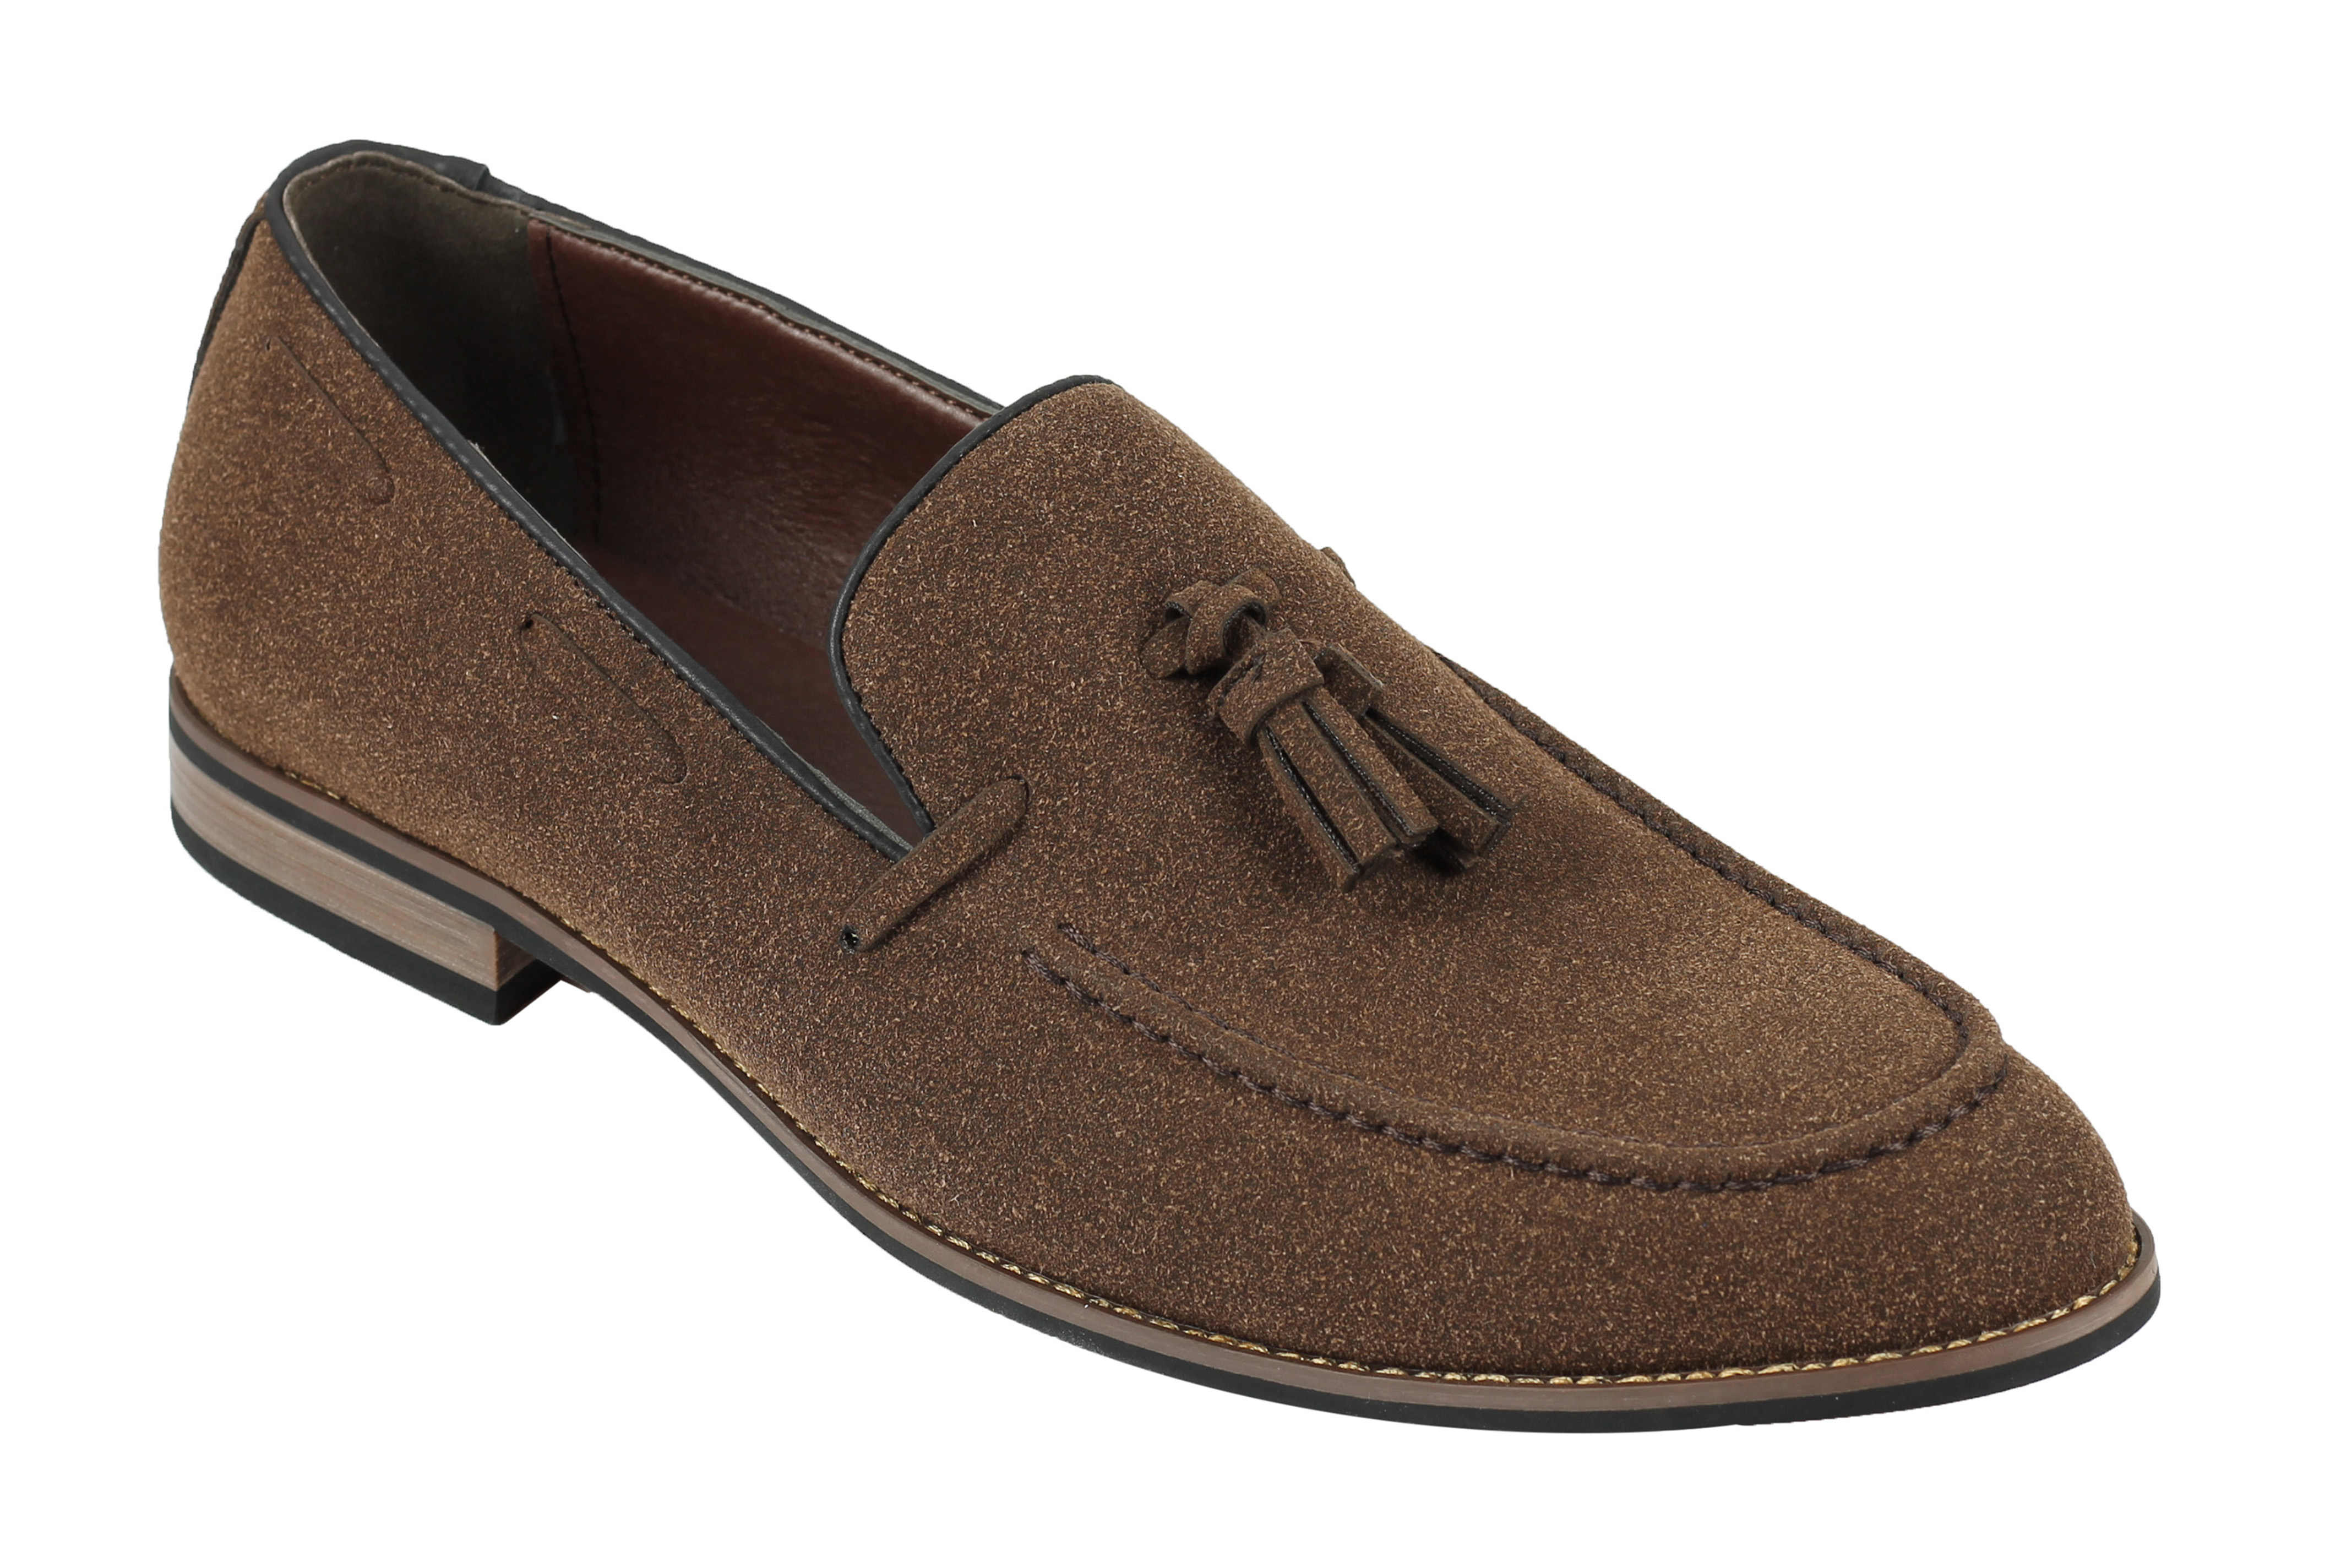 Mens Smart Shoes With Tassels